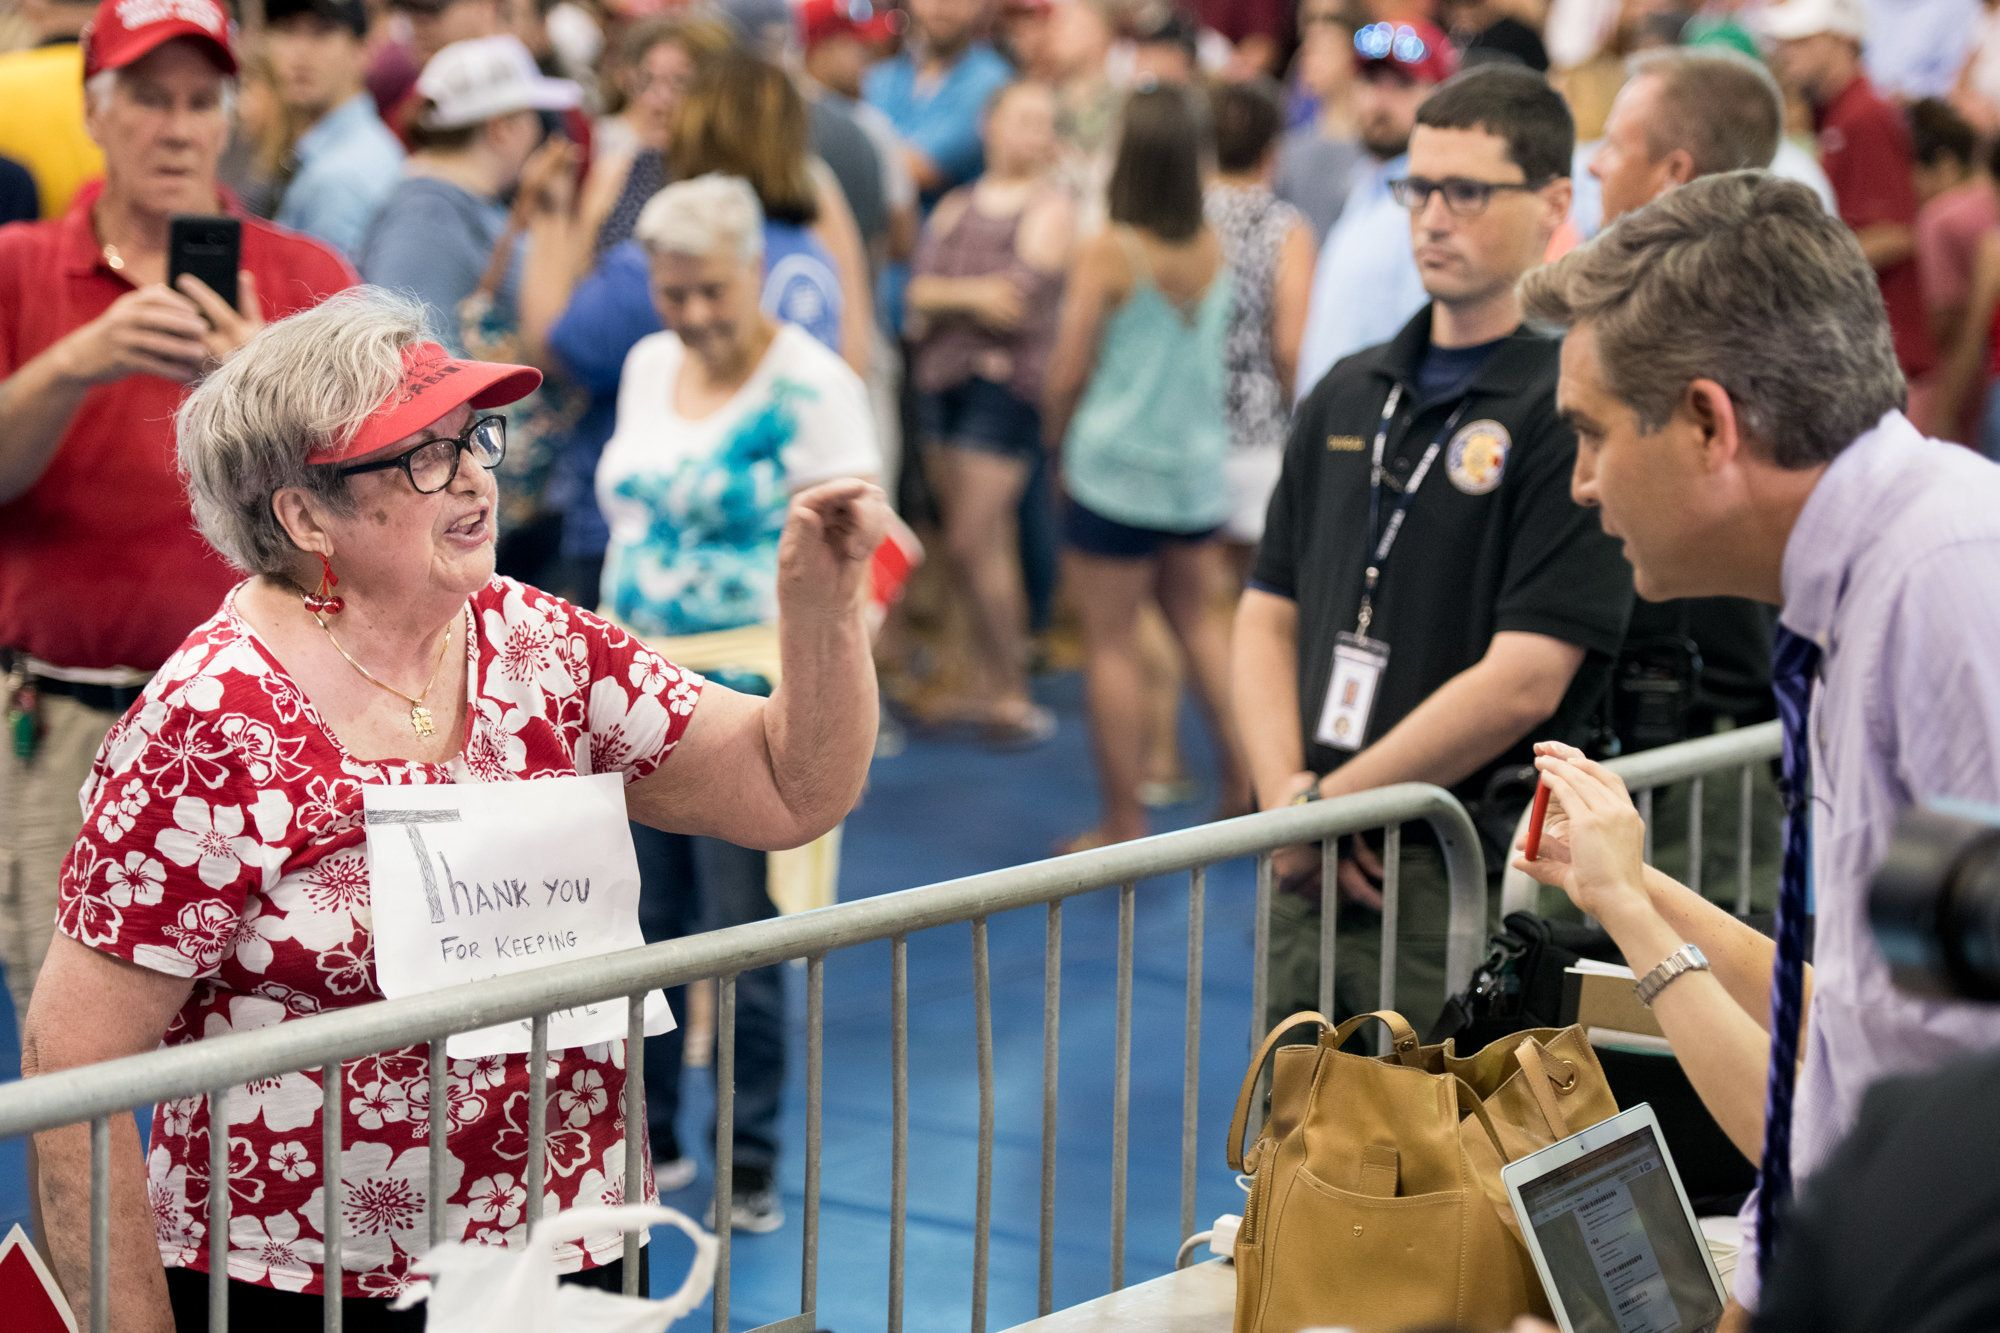 WEST COLUMBIA, SC - JUNE 25: Maria Rojas shouts at Jim Acosta of CNN before a campaign rally for Governor Henry McMaster featuring President Donald Trump June 25, 2018 in Columbia, South Carolina. (Photo by Sean Rayford/Getty Images)